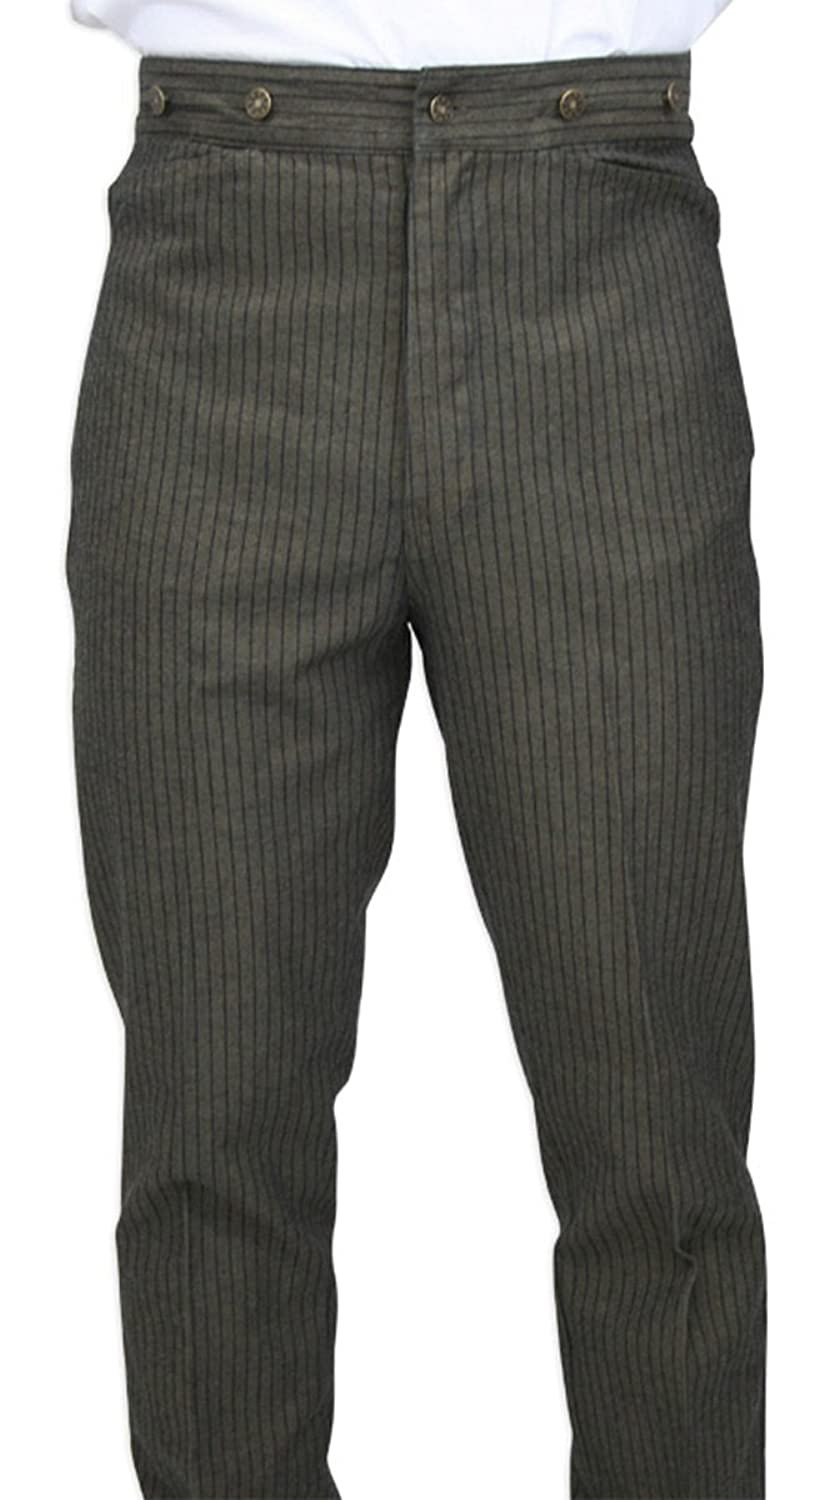 1920s Men's Pants, Trousers, Plus Fours, Knickers High Waist Cotton Ludlow Striped Trousers $59.95 AT vintagedancer.com